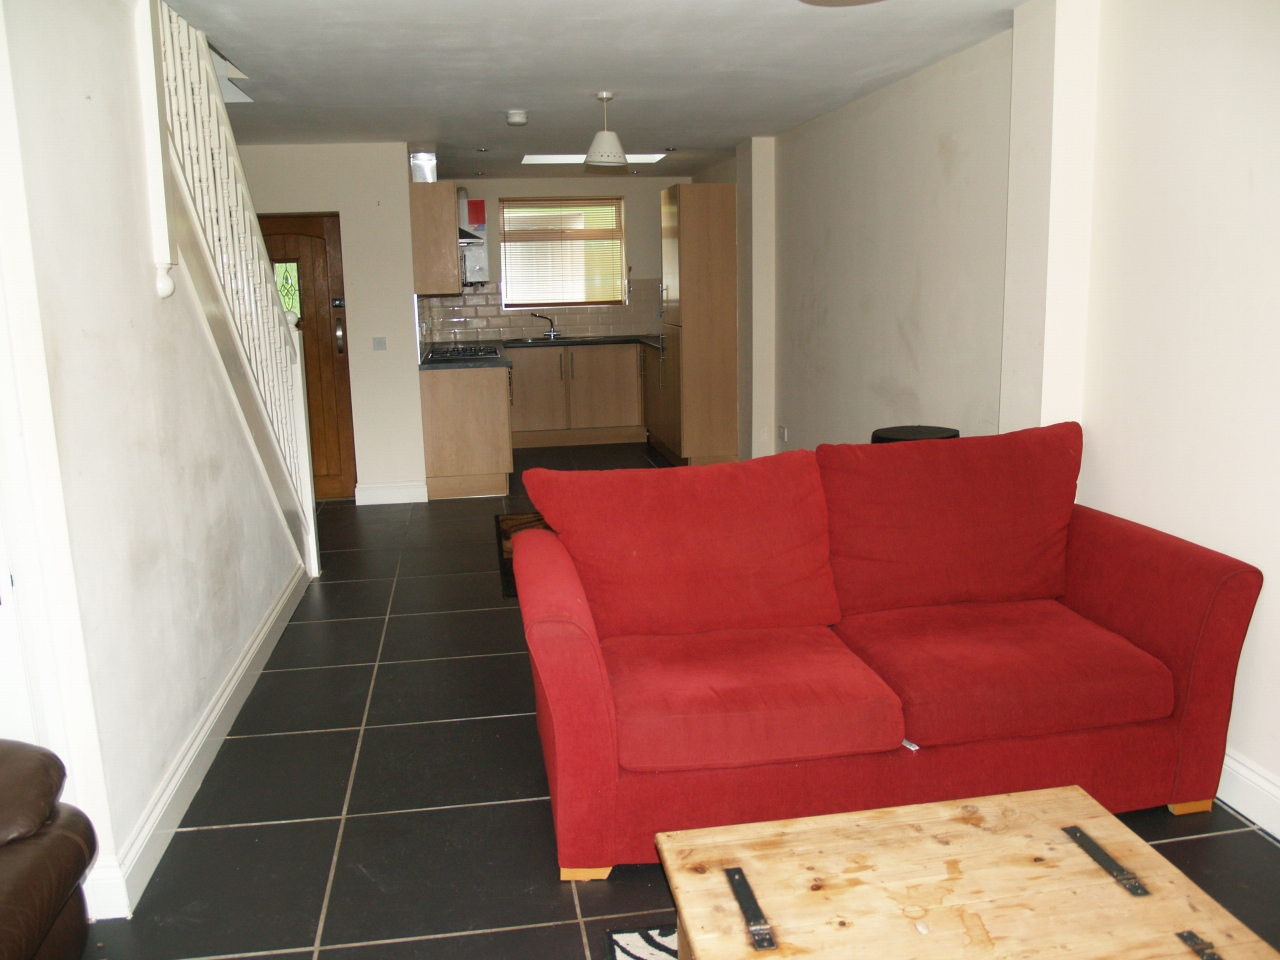 3 bedroom mid terraced house For Sale in Birmingham - Photograph 2.